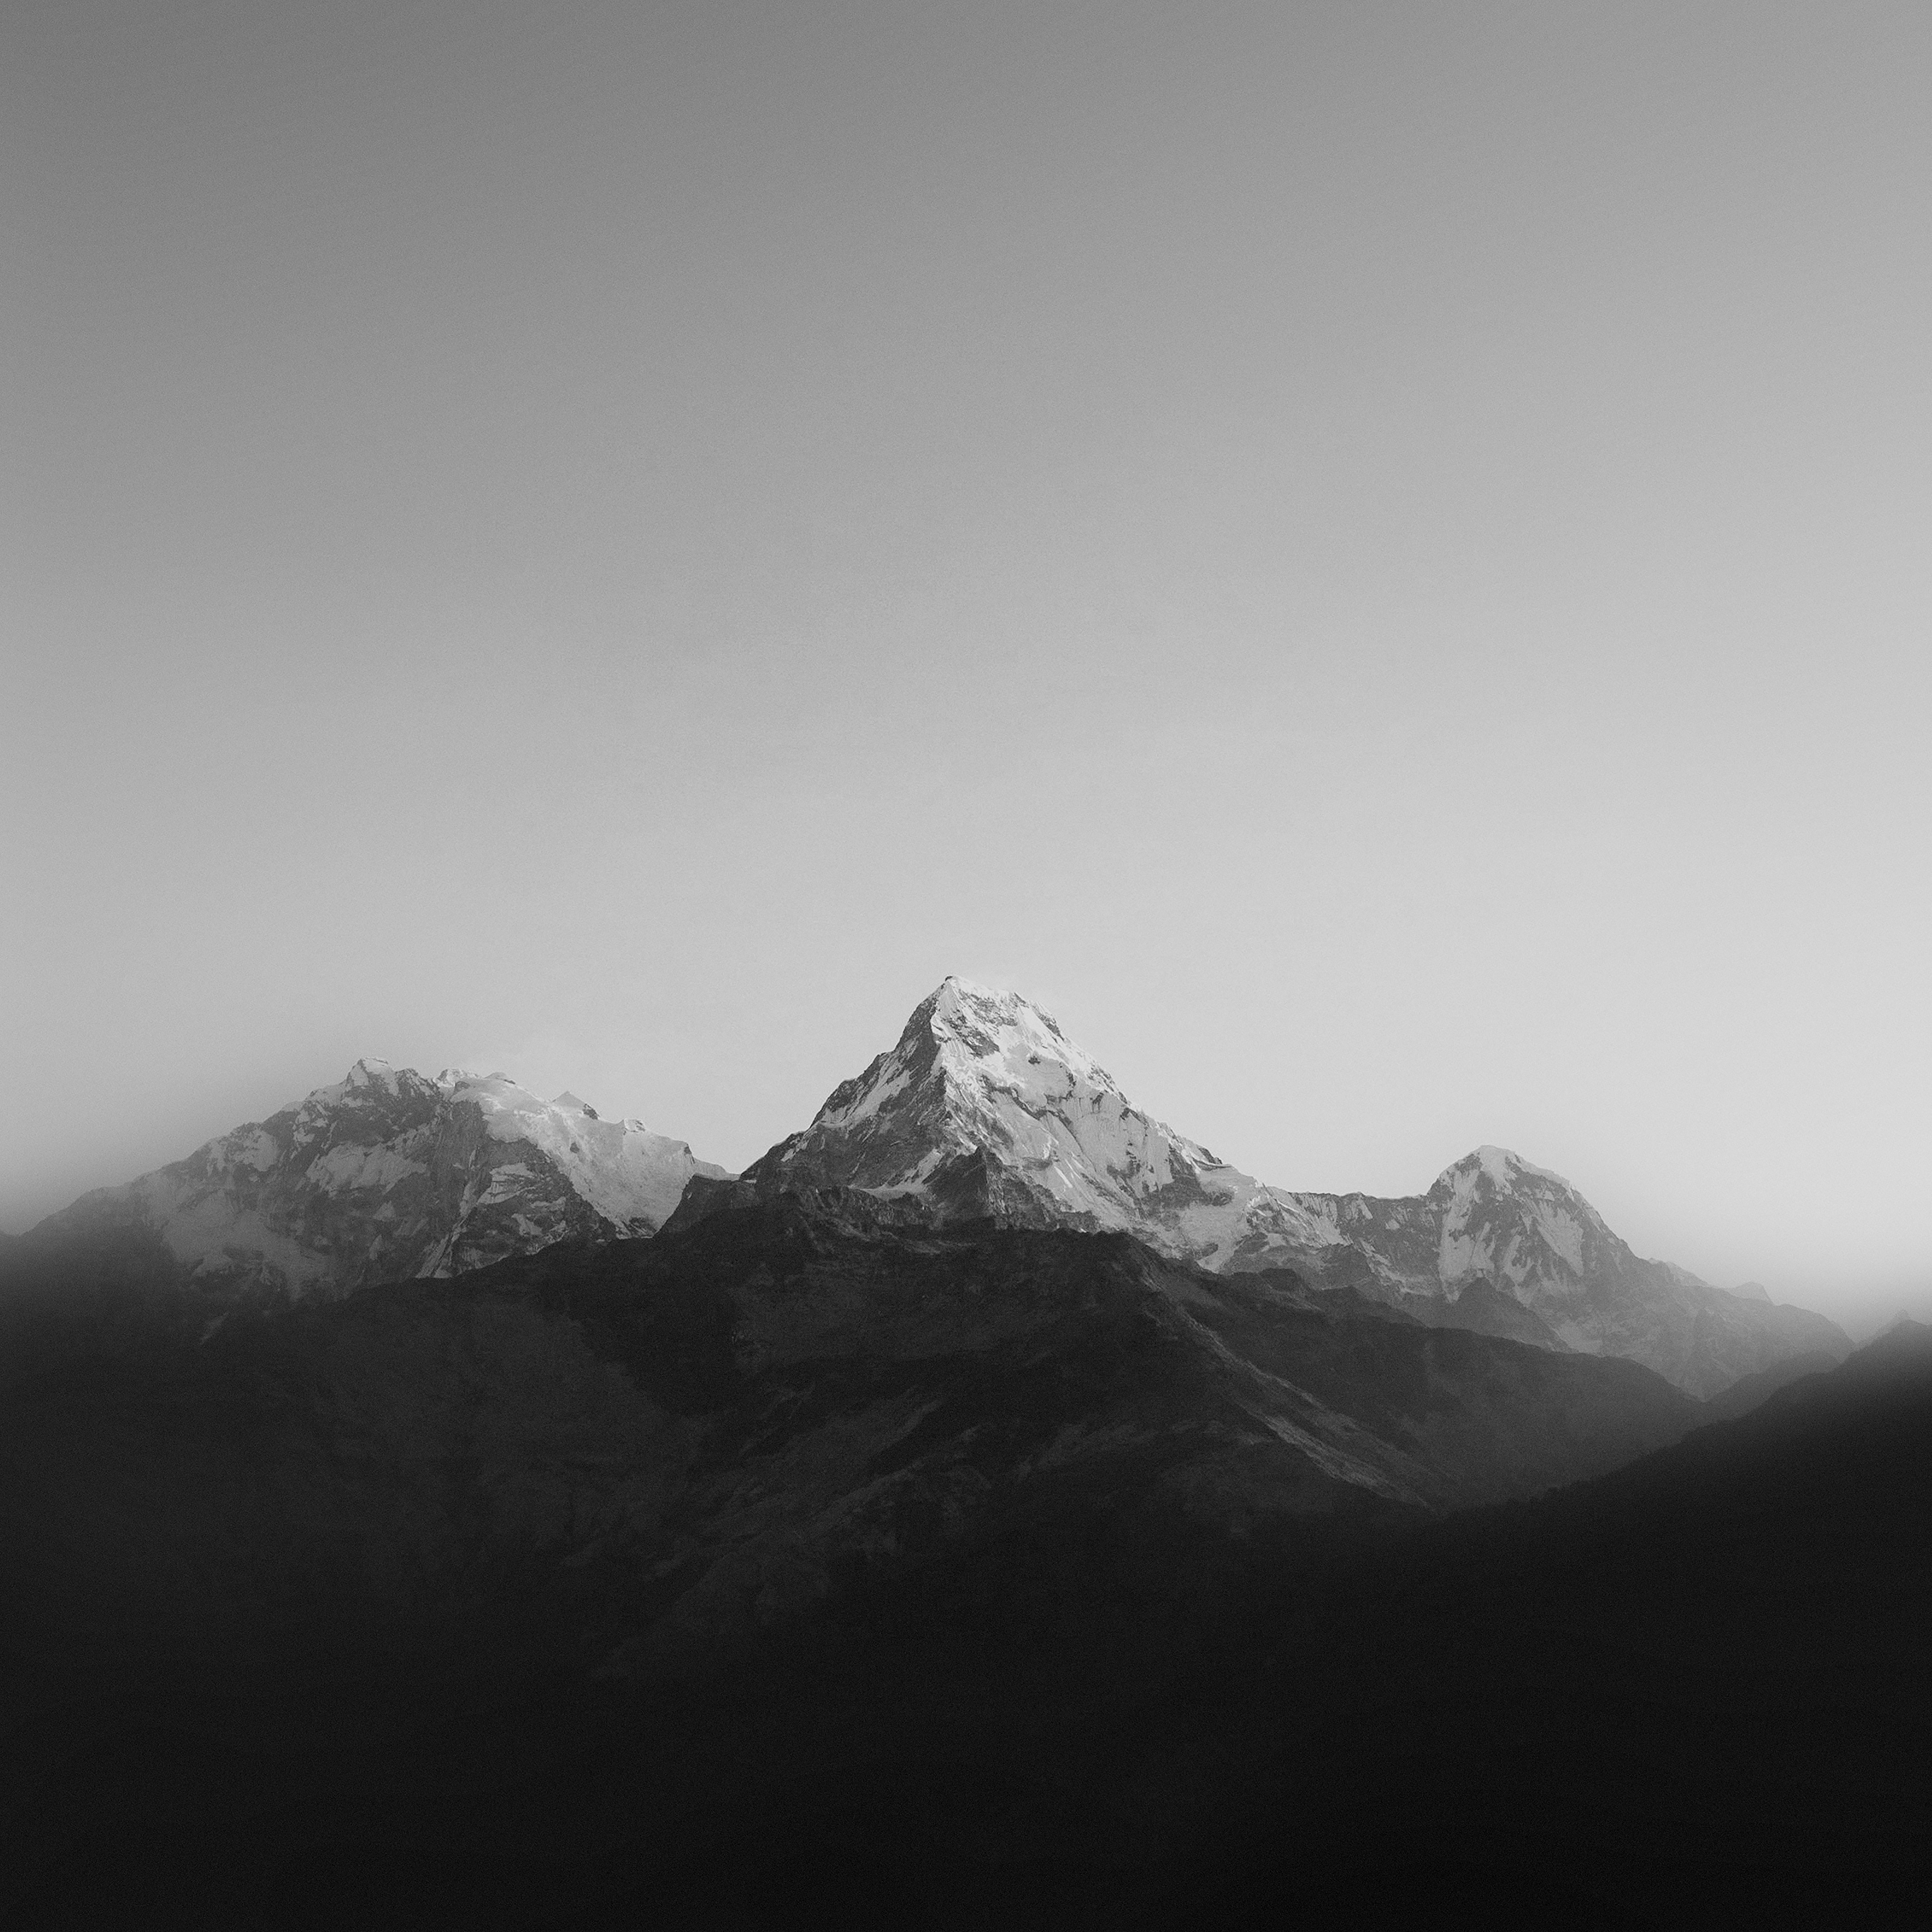 Ml66 Mountain Bw Dark High Sky Nature Rocky Papers Co